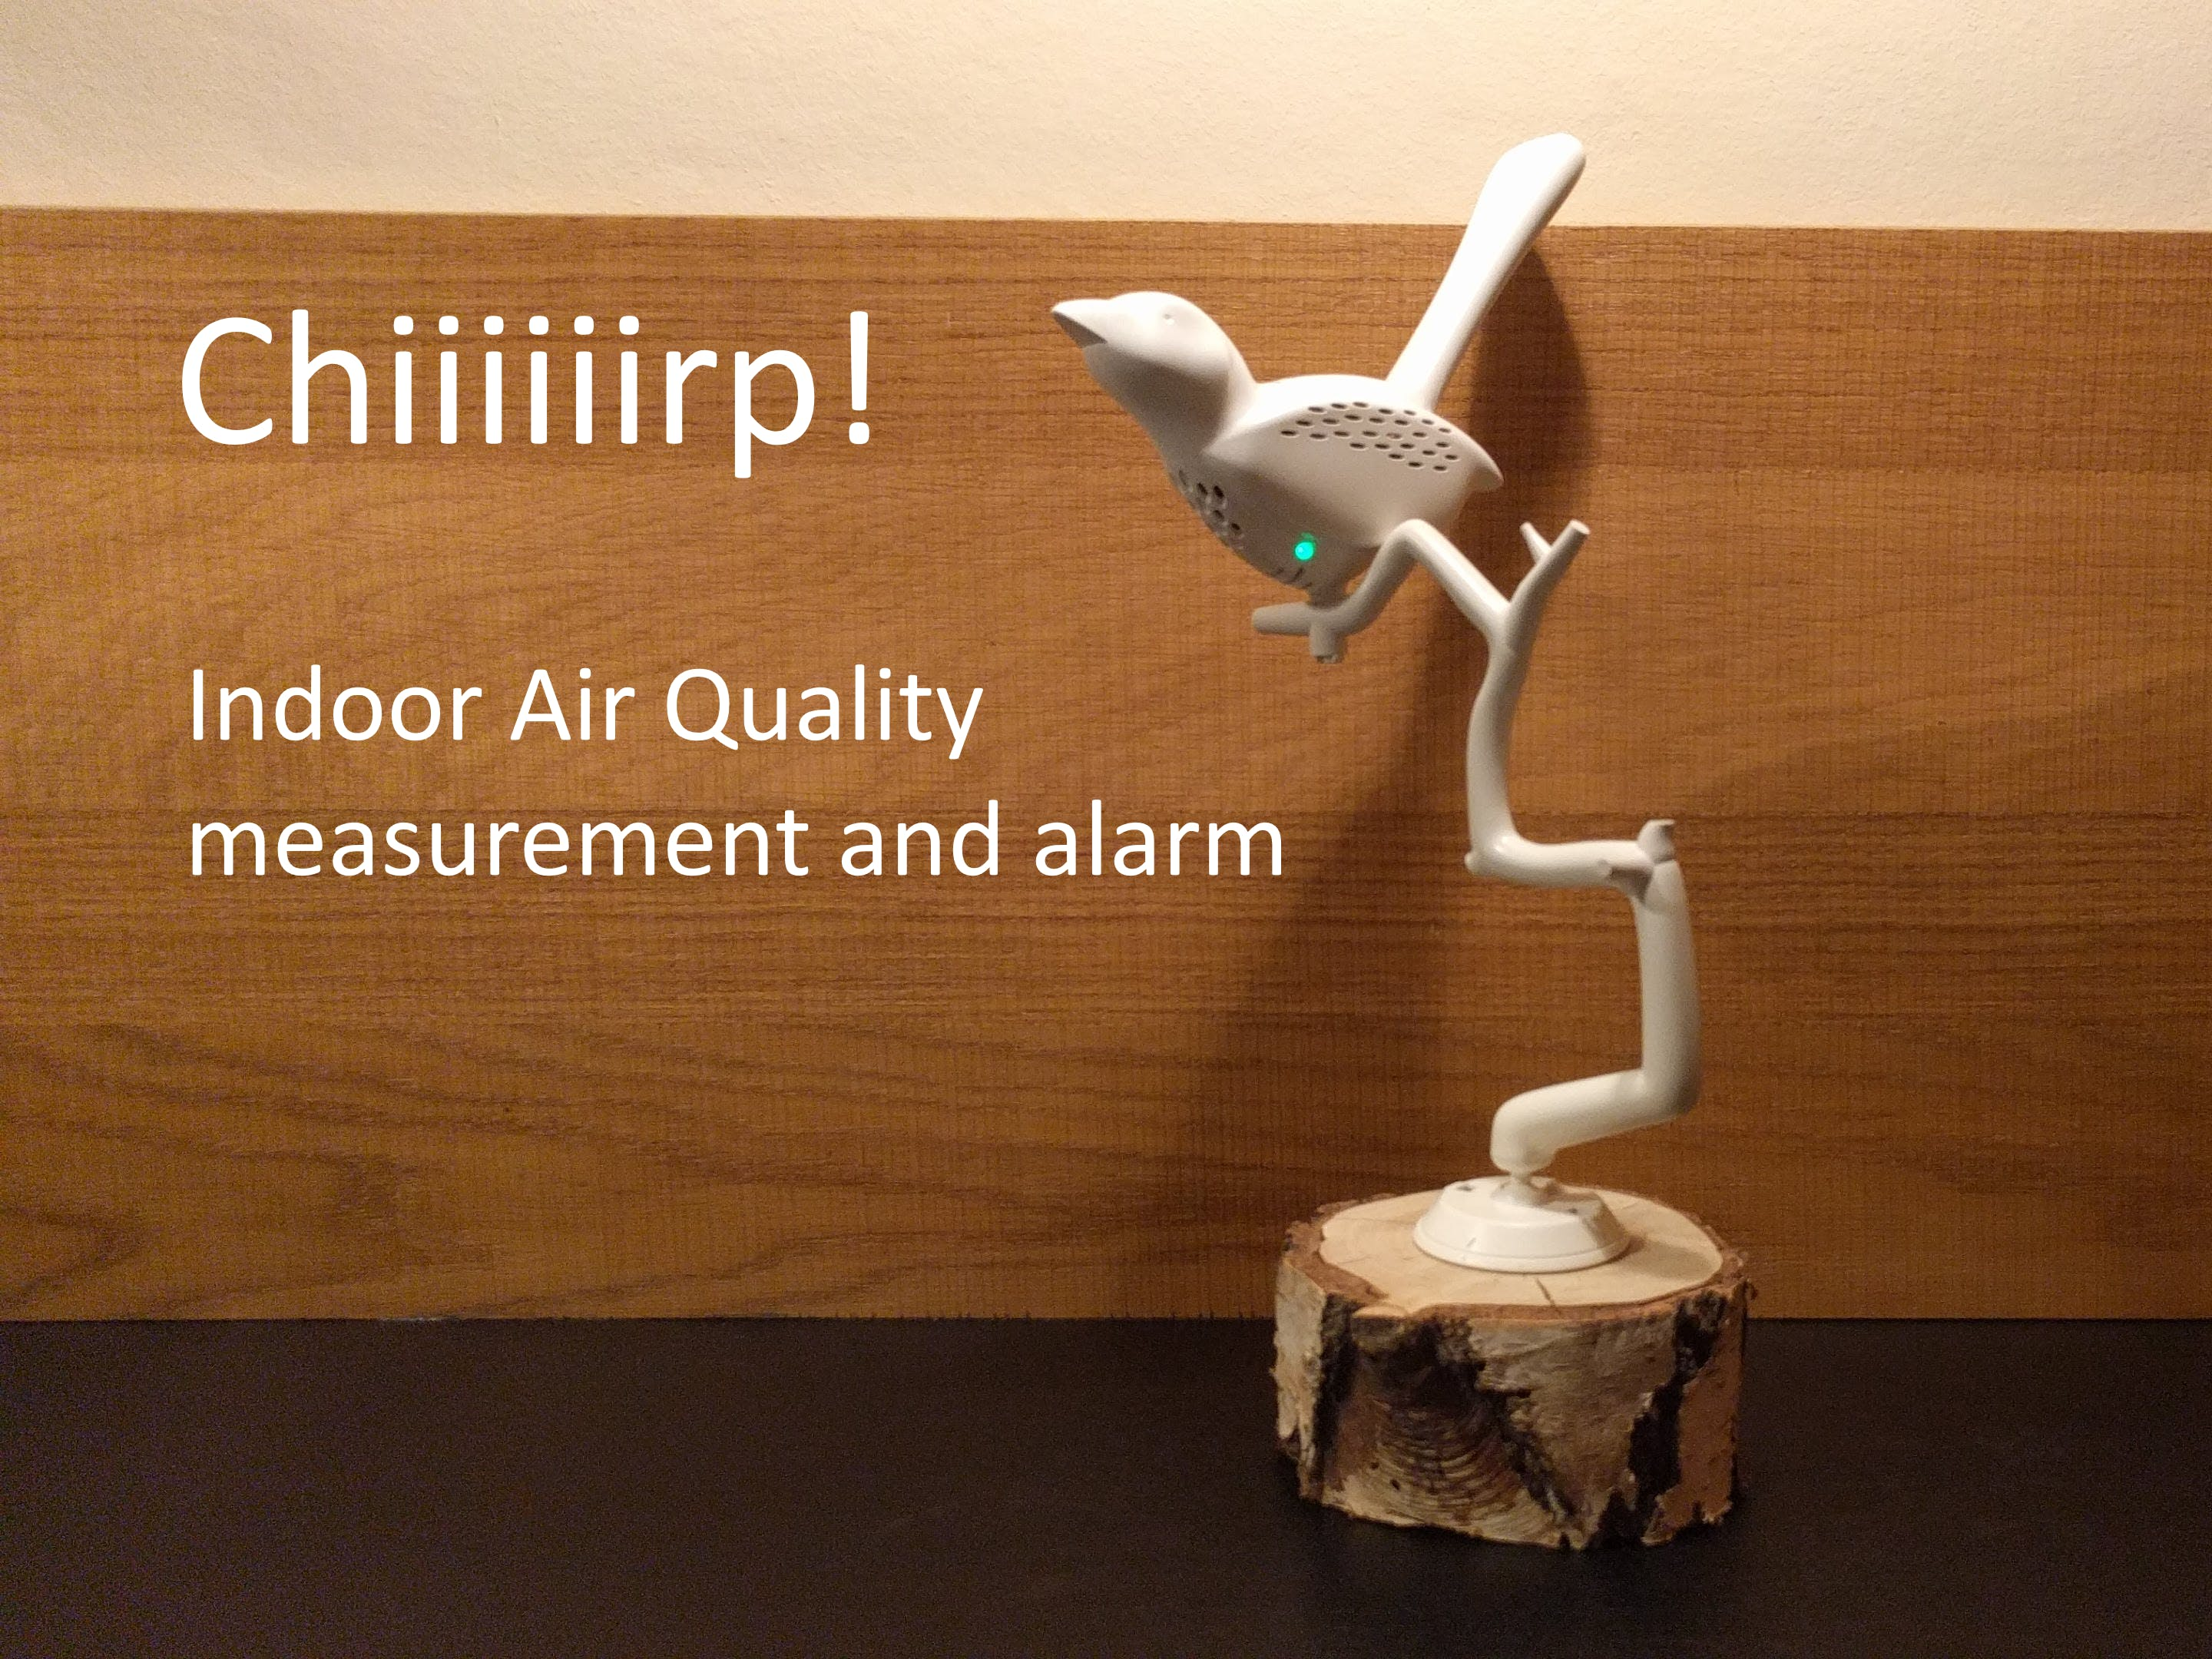 Chiiiiiirp! Indoor Air Quality Measurement and Alarm